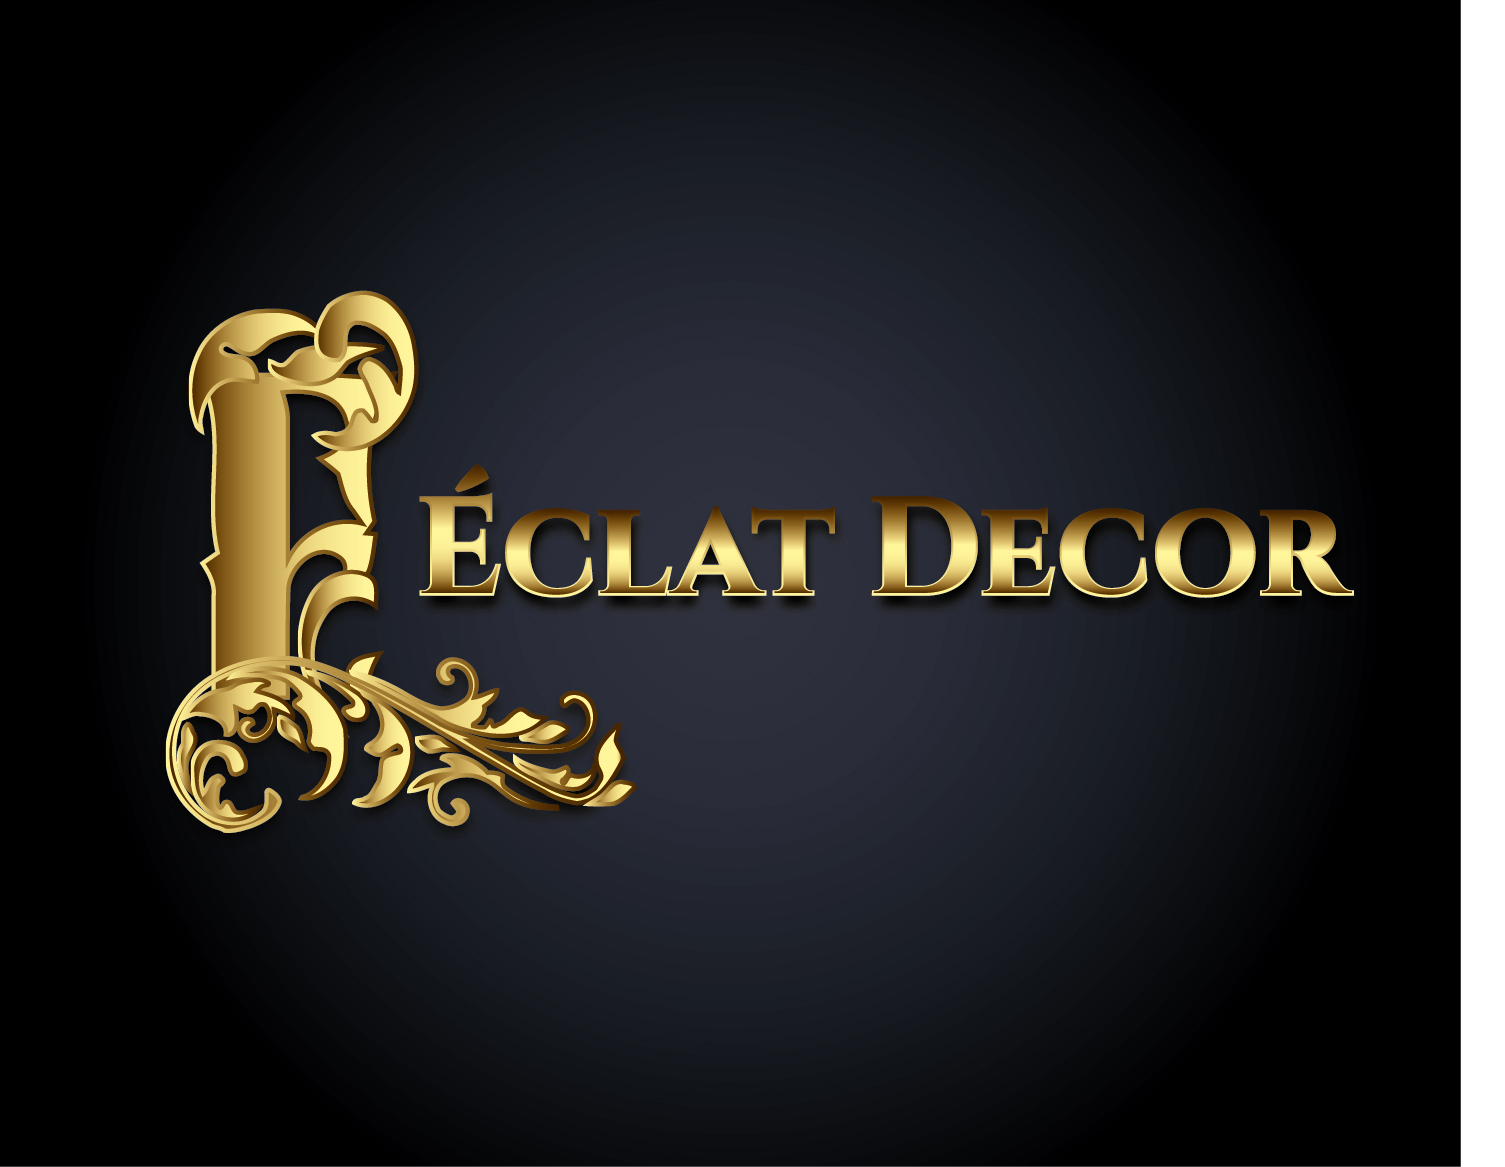 Logo Design by VENTSISLAV KOVACHEV - Entry No. 4 in the Logo Design Contest Imaginative Logo Design for Éclat Decor.